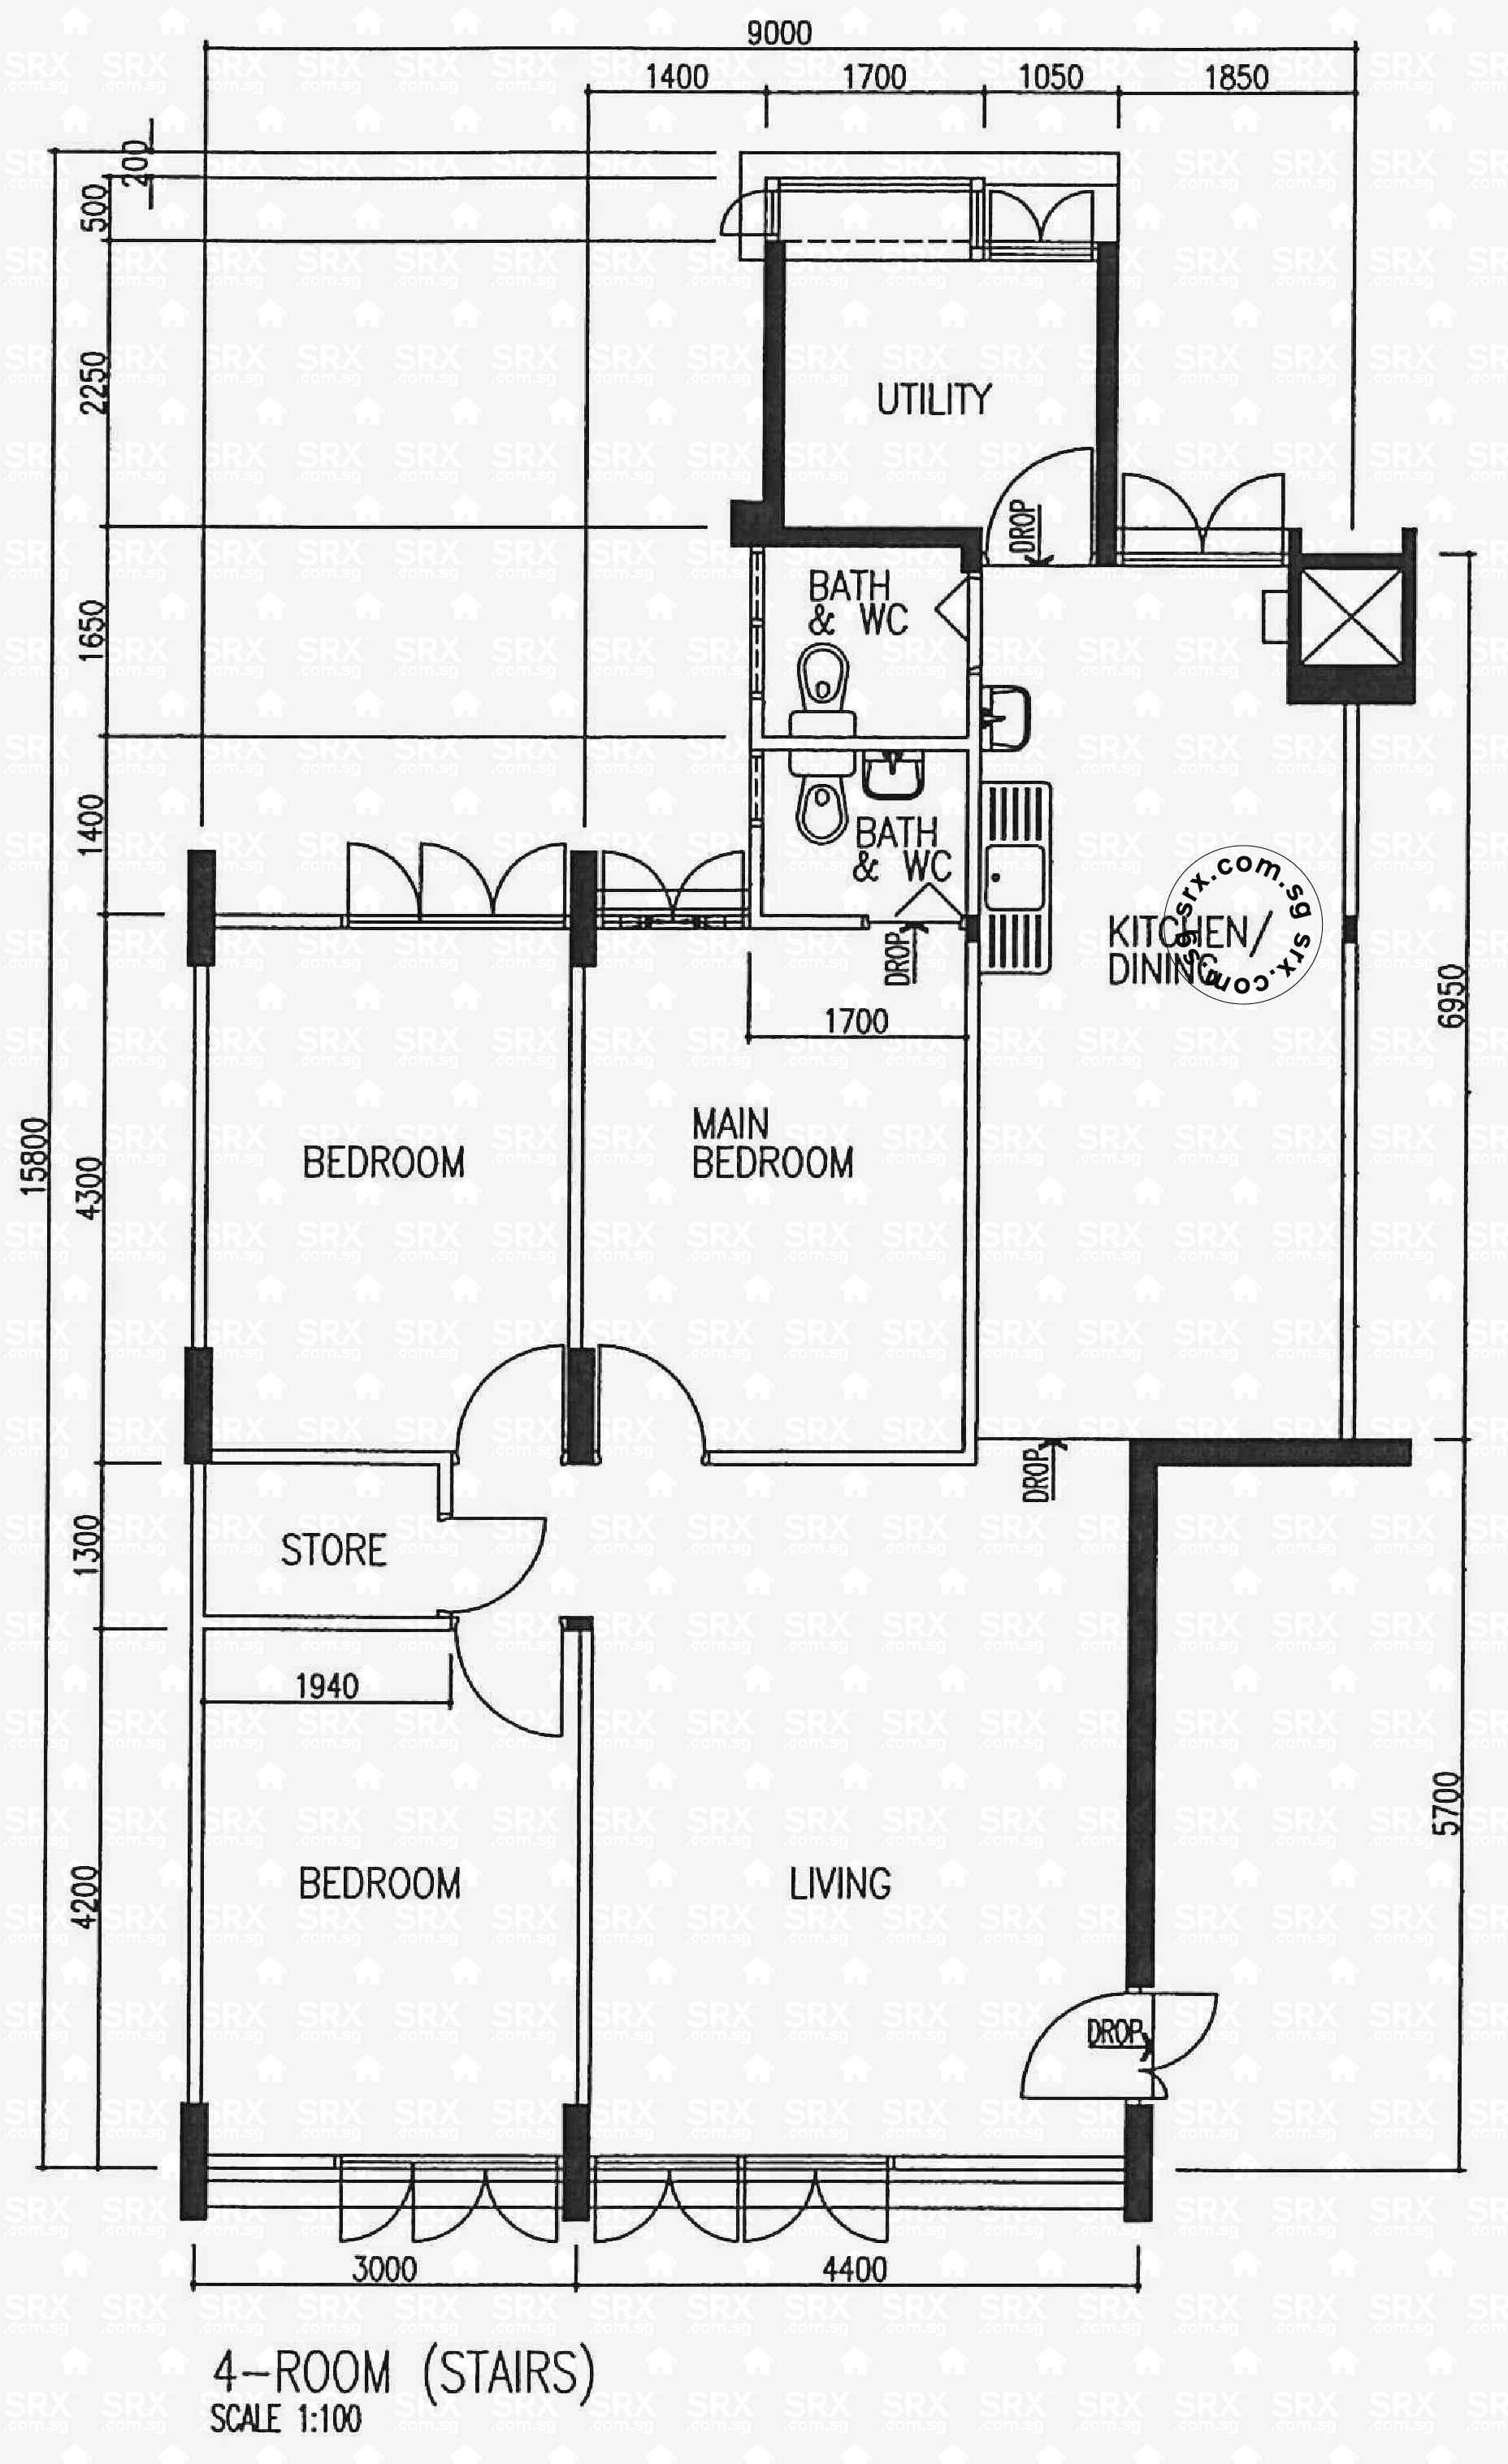 Floor plans for teck whye lane hdb details srx property for View floor plans